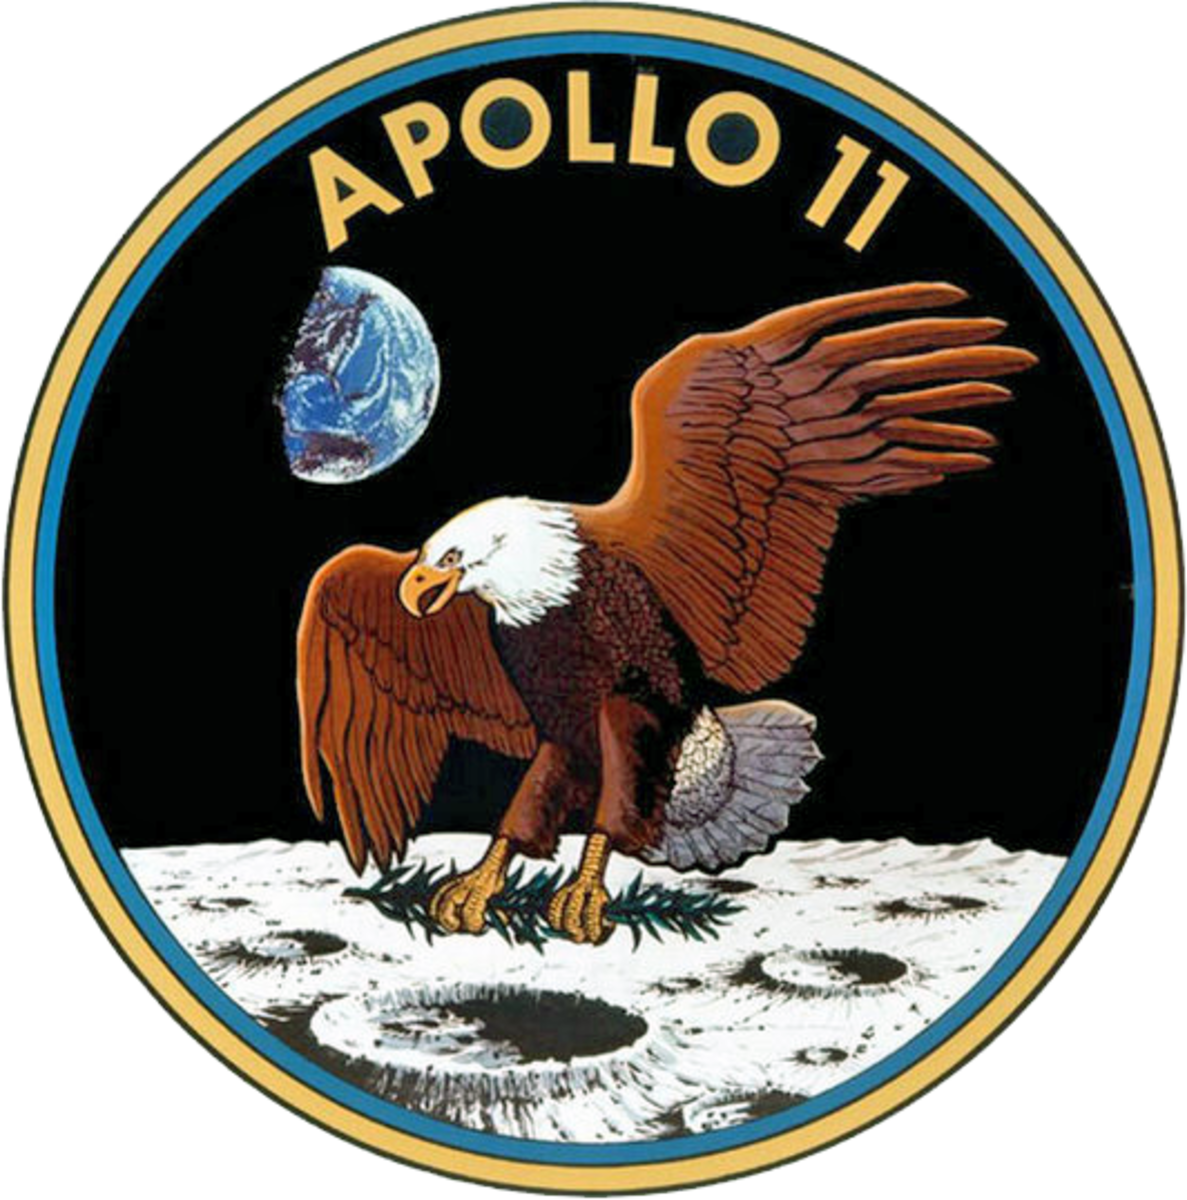 The Apollo 11 insignia used as a basis for the design of the reverse of the Eisenhower dollar.